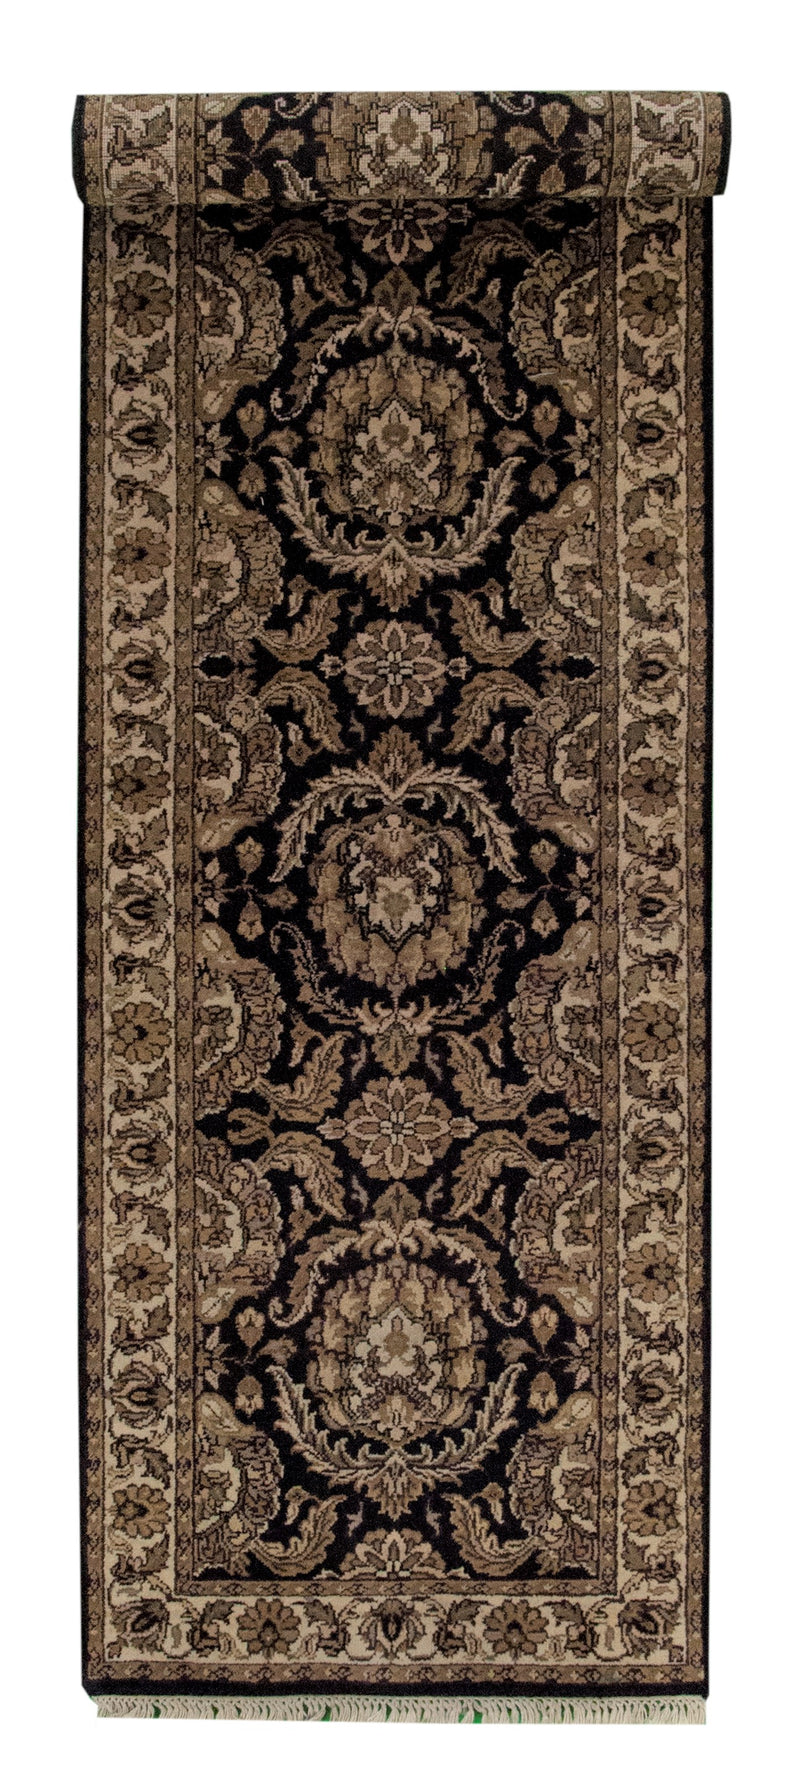 Jaipur Runner Black 2'6x8'2